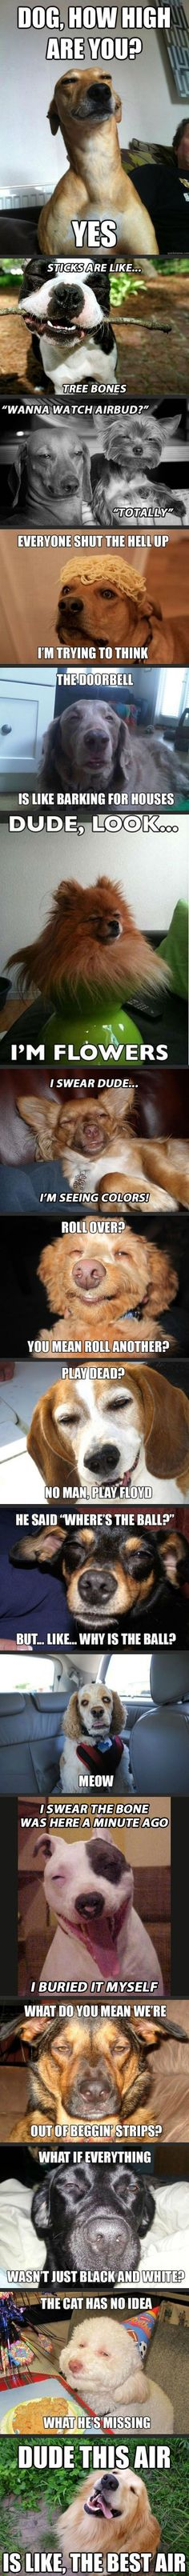 quite disturbing and somewhat funny #dogs #humor